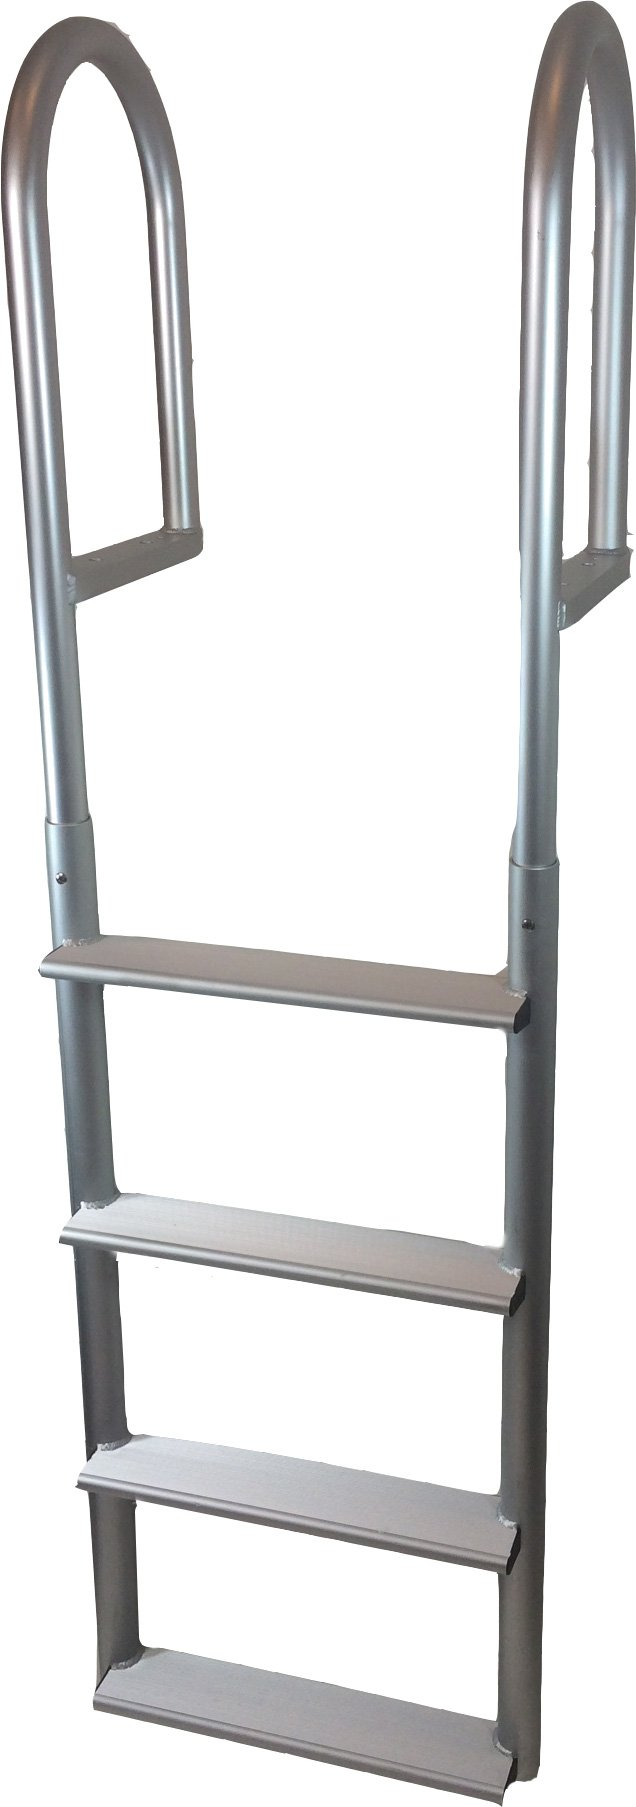 RecPro Marine ADL-A4W 4 STEP STATIONARY STRAIGHT DOCK BOAT LADDER 20'' WIDE 500 LB CAPACITY